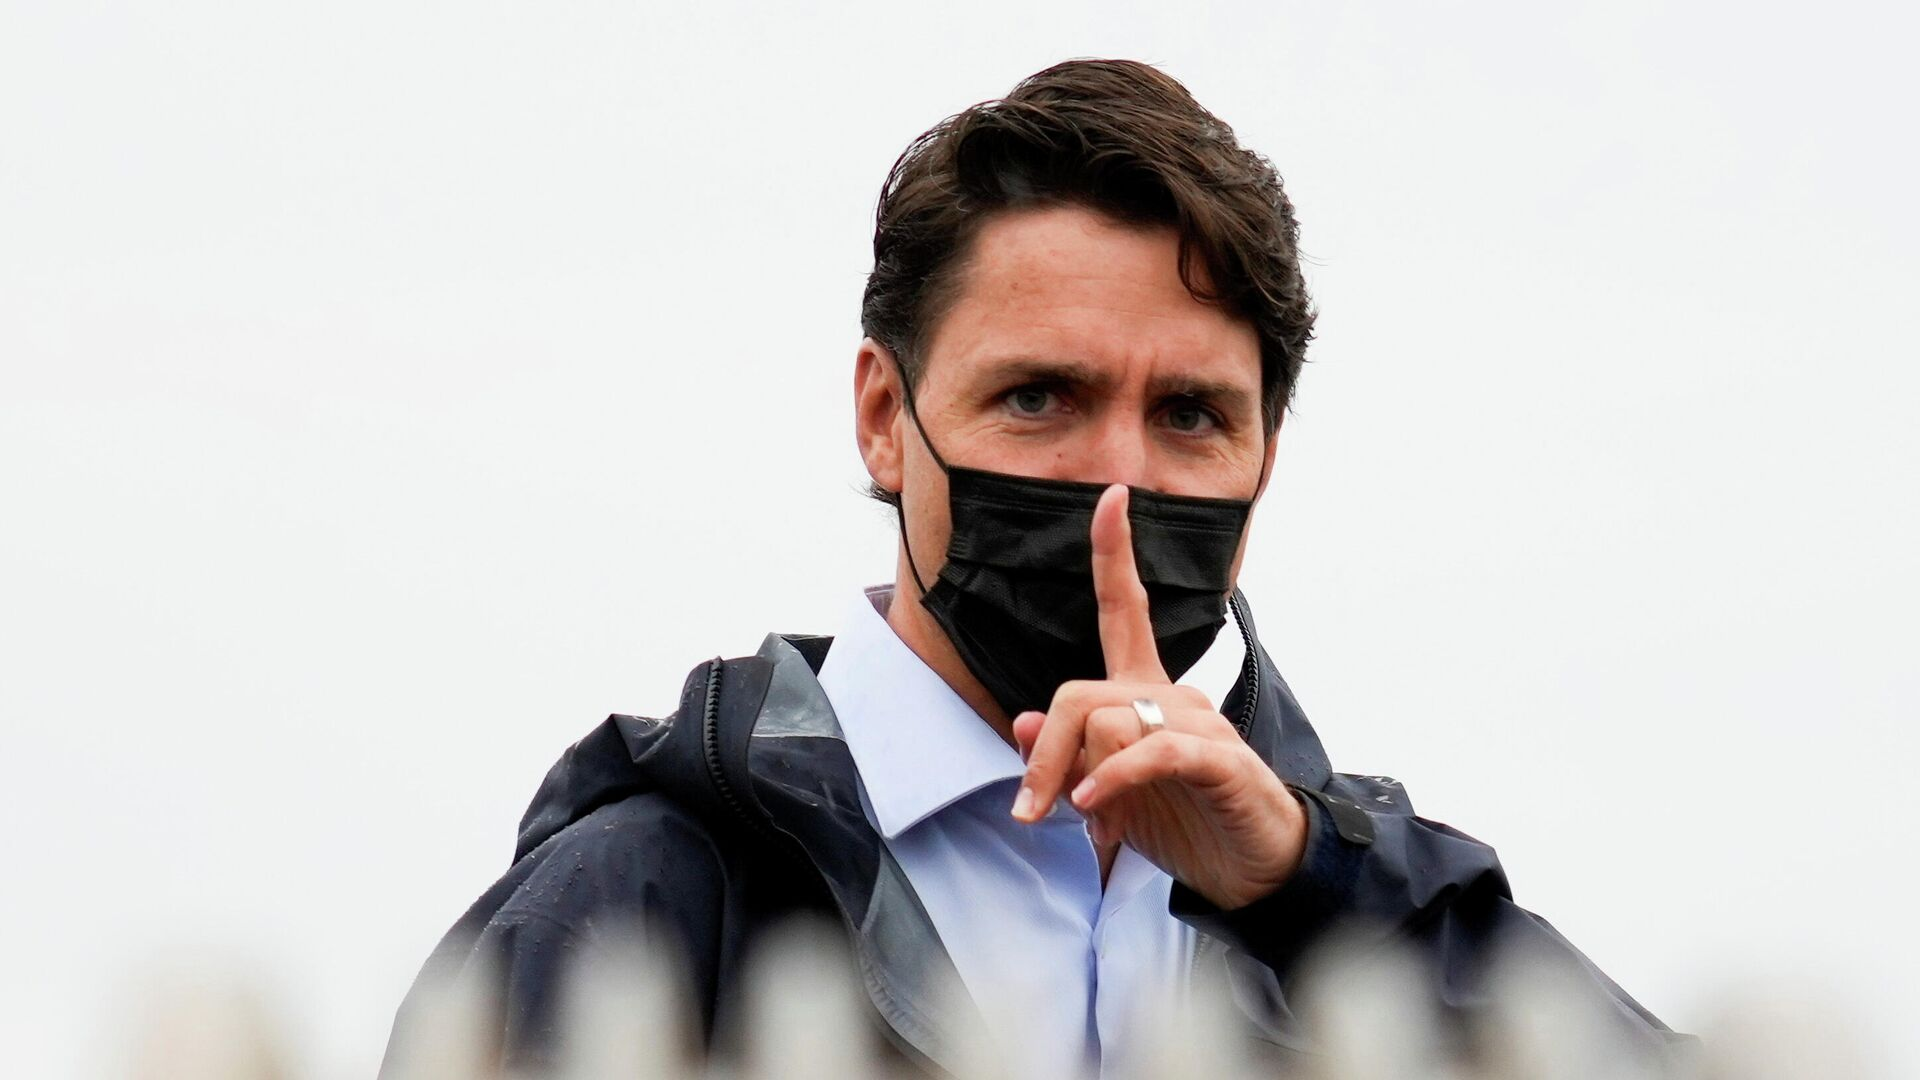 Canada's Prime Minister Justin Trudeau gestures to his staff after an election campaign stop in Richmond, British Columbia Canada September 14, 2021 - Sputnik International, 1920, 15.09.2021